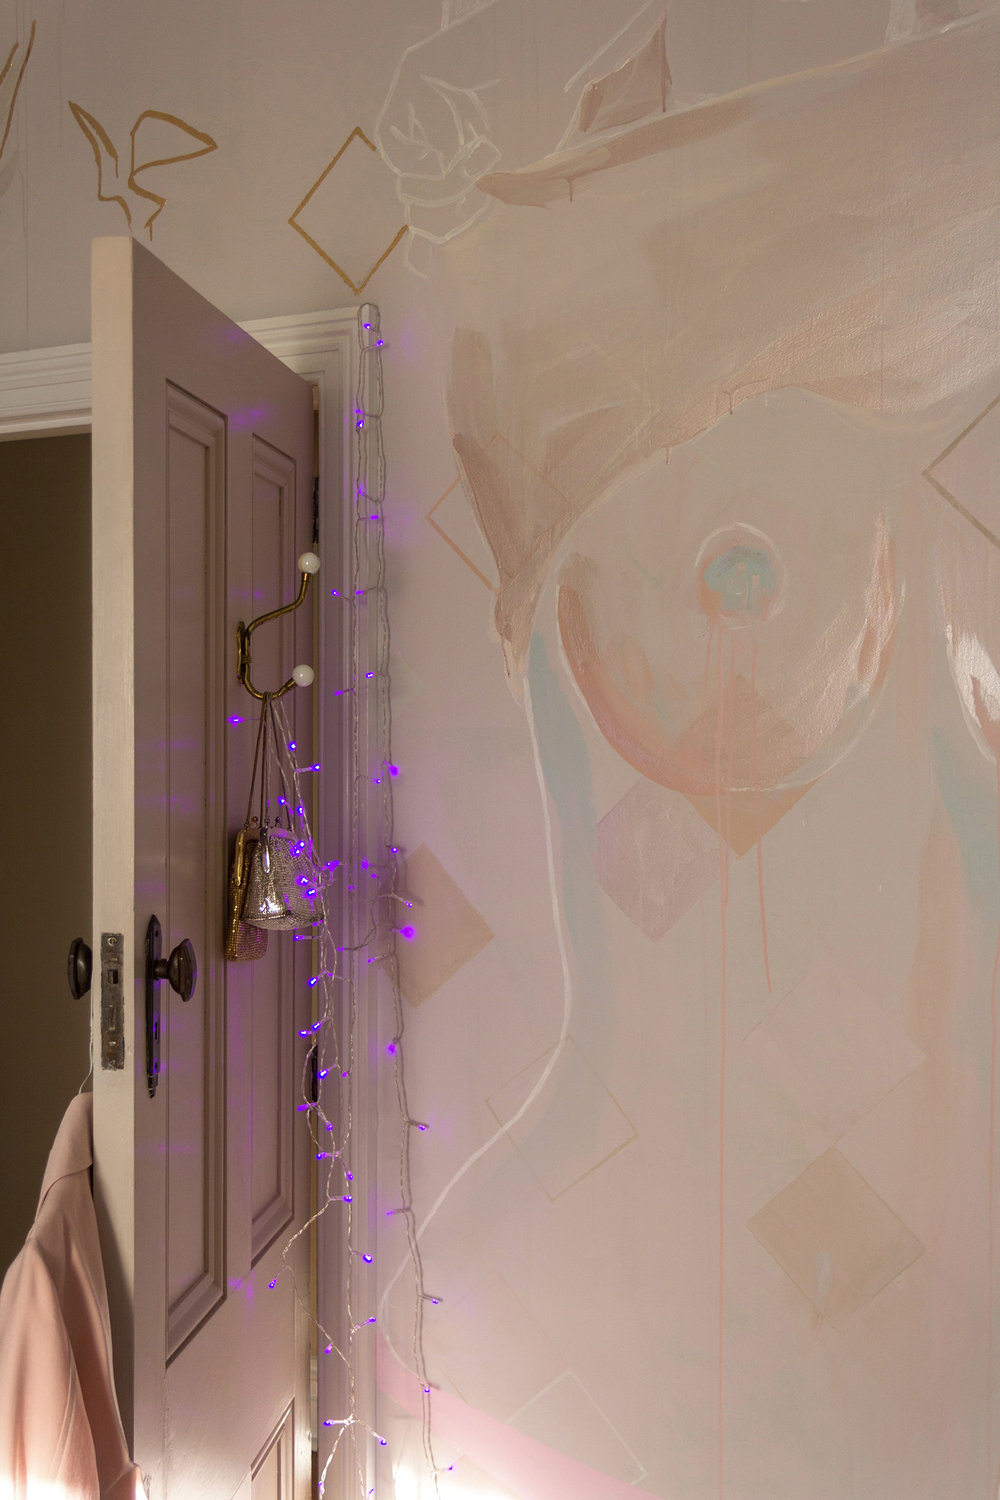 Topless woman mural - female is taking her top off and exposing her naked breasts. Painted in pastel and metallic colours with gold leaf birds flying out from the figure. Purple fairy lights glow around the bedroom door.